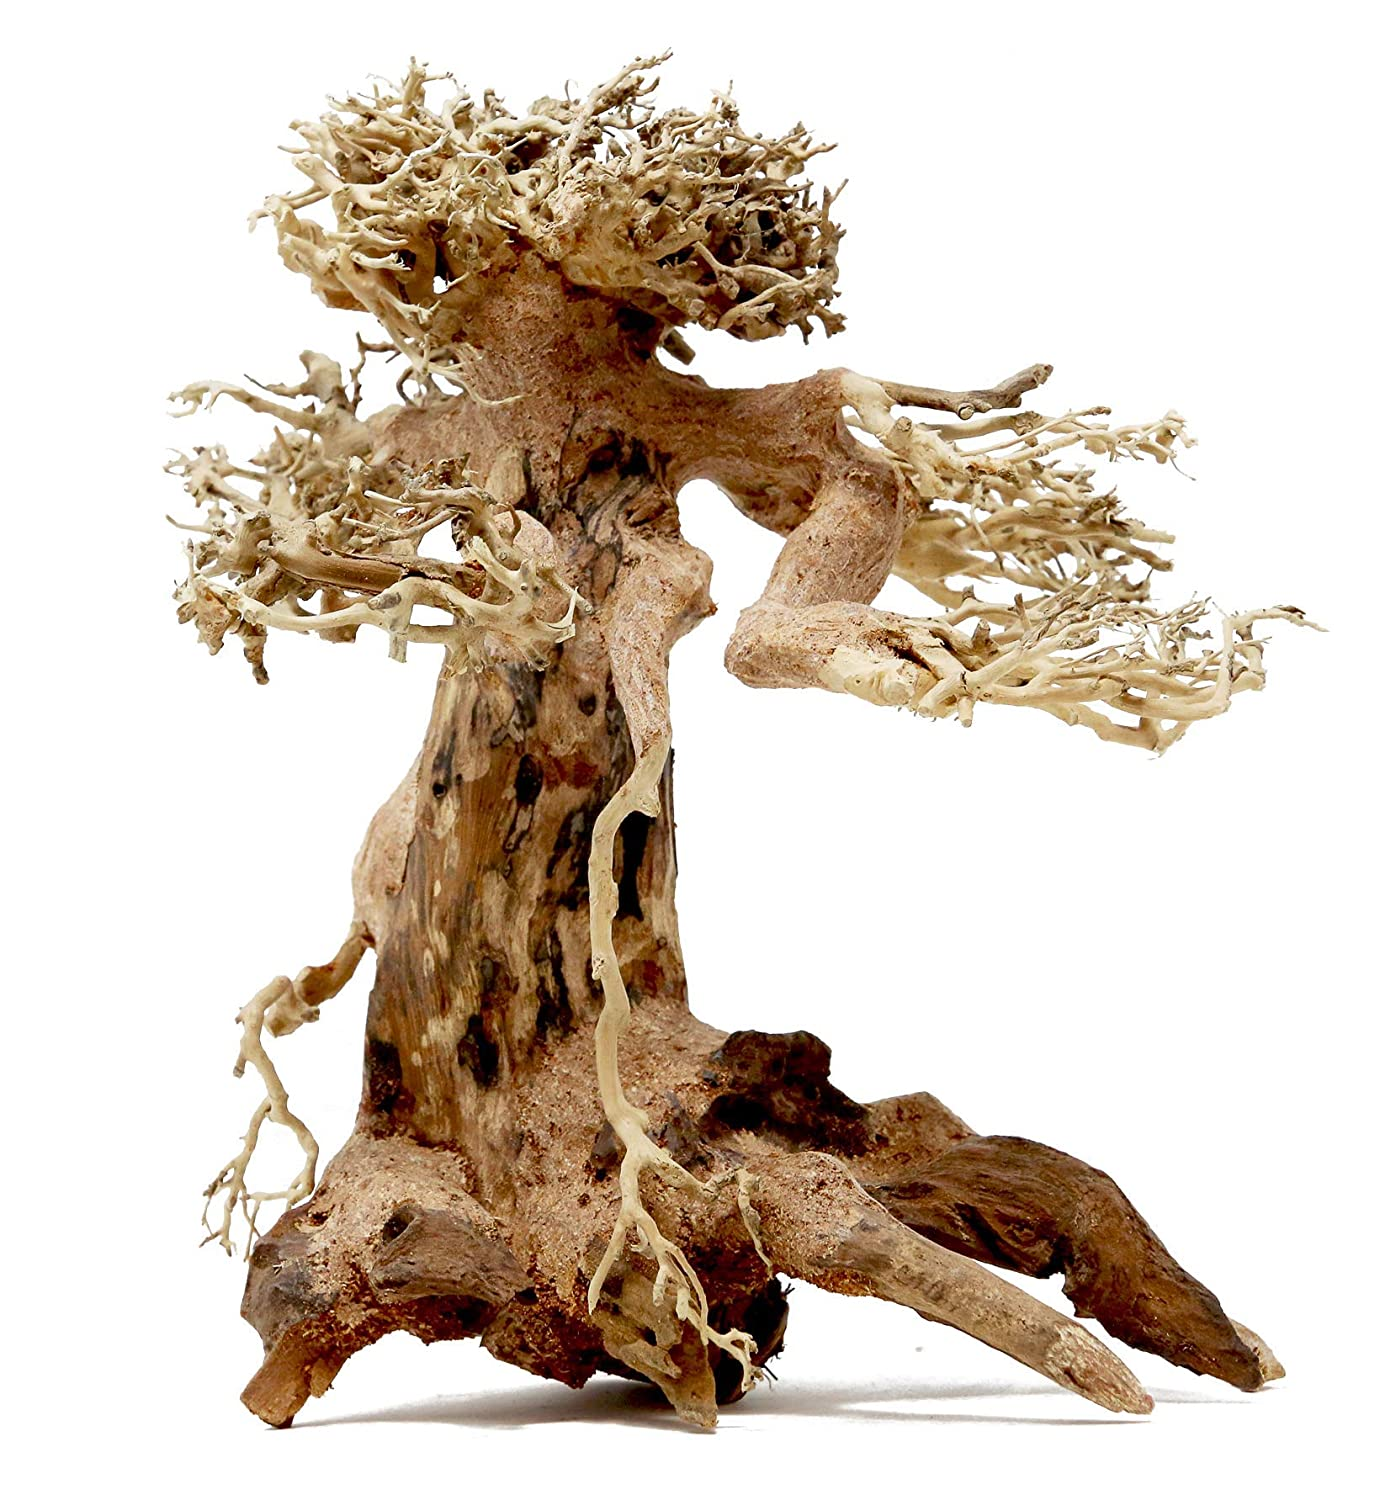 Bonsai Driftwood Aquarium Tree Am 8 Inch Height X 6 Inch Length Natural Handcrafted Fish Tank Decoration Helps Balance Water Ph Levels Stabilizes Environments Easy To Install Amazon Com Grocery Gourmet Food